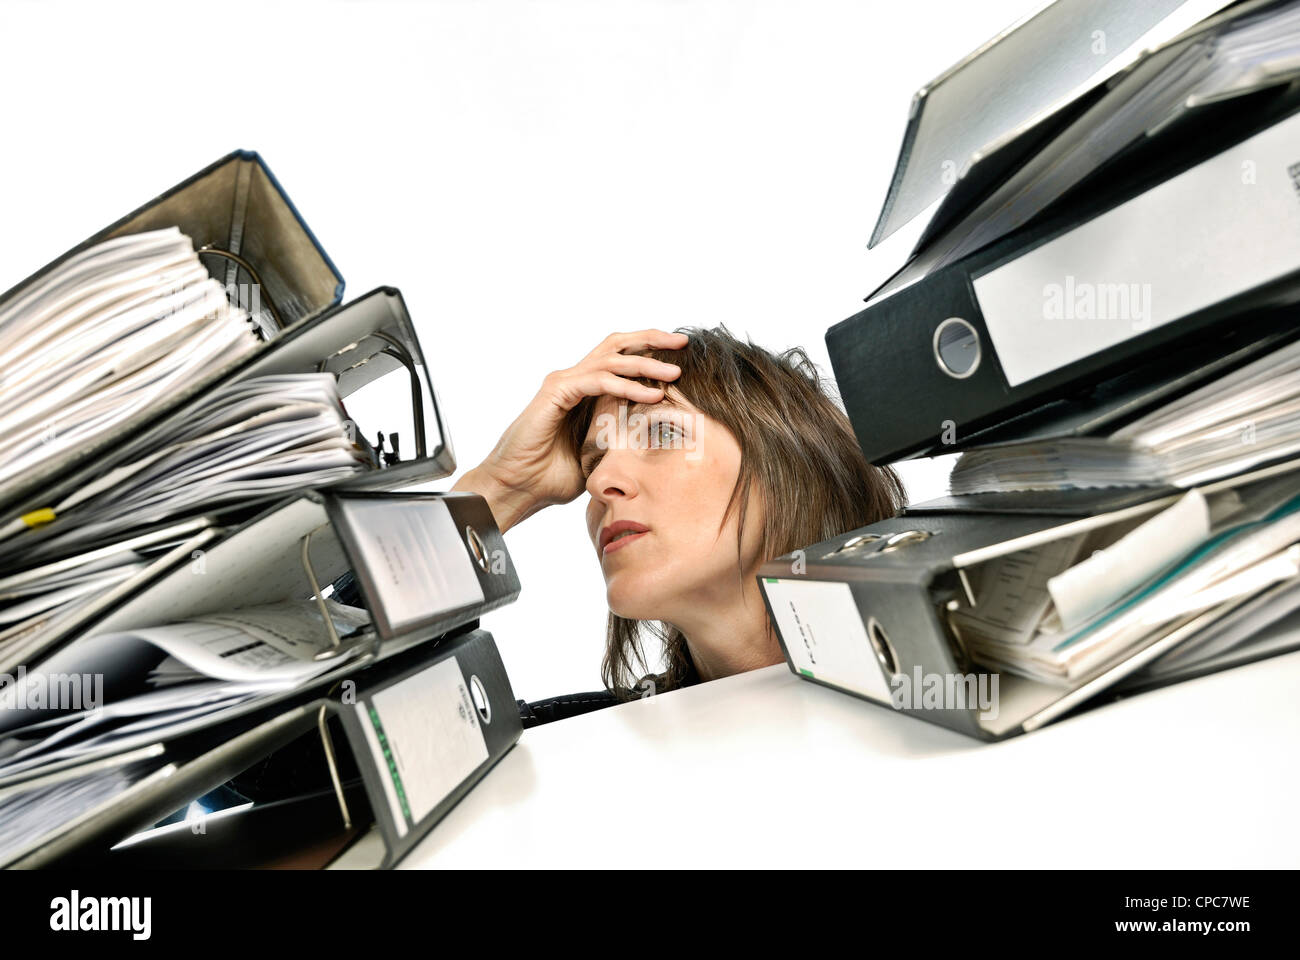 Overburdened staff between two stacks of files. - Stock Image